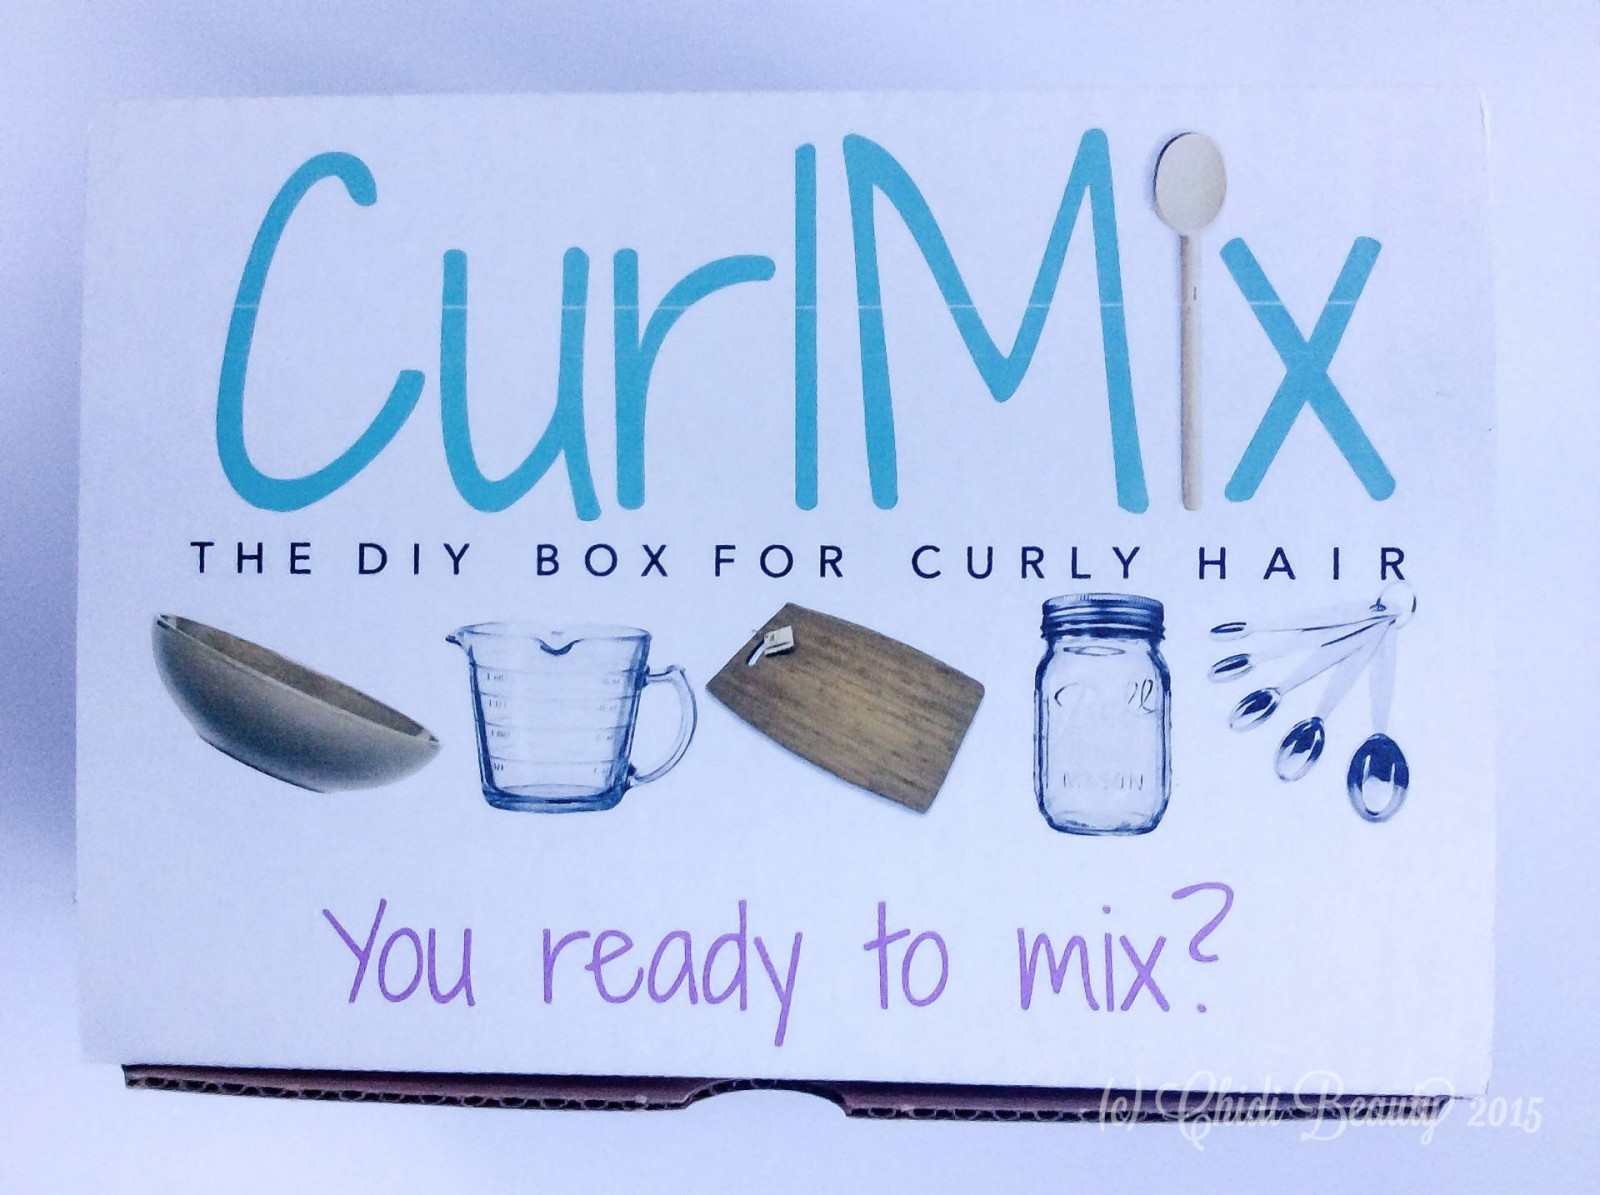 CurlMix Subscription Box - November 2015 Unboxing